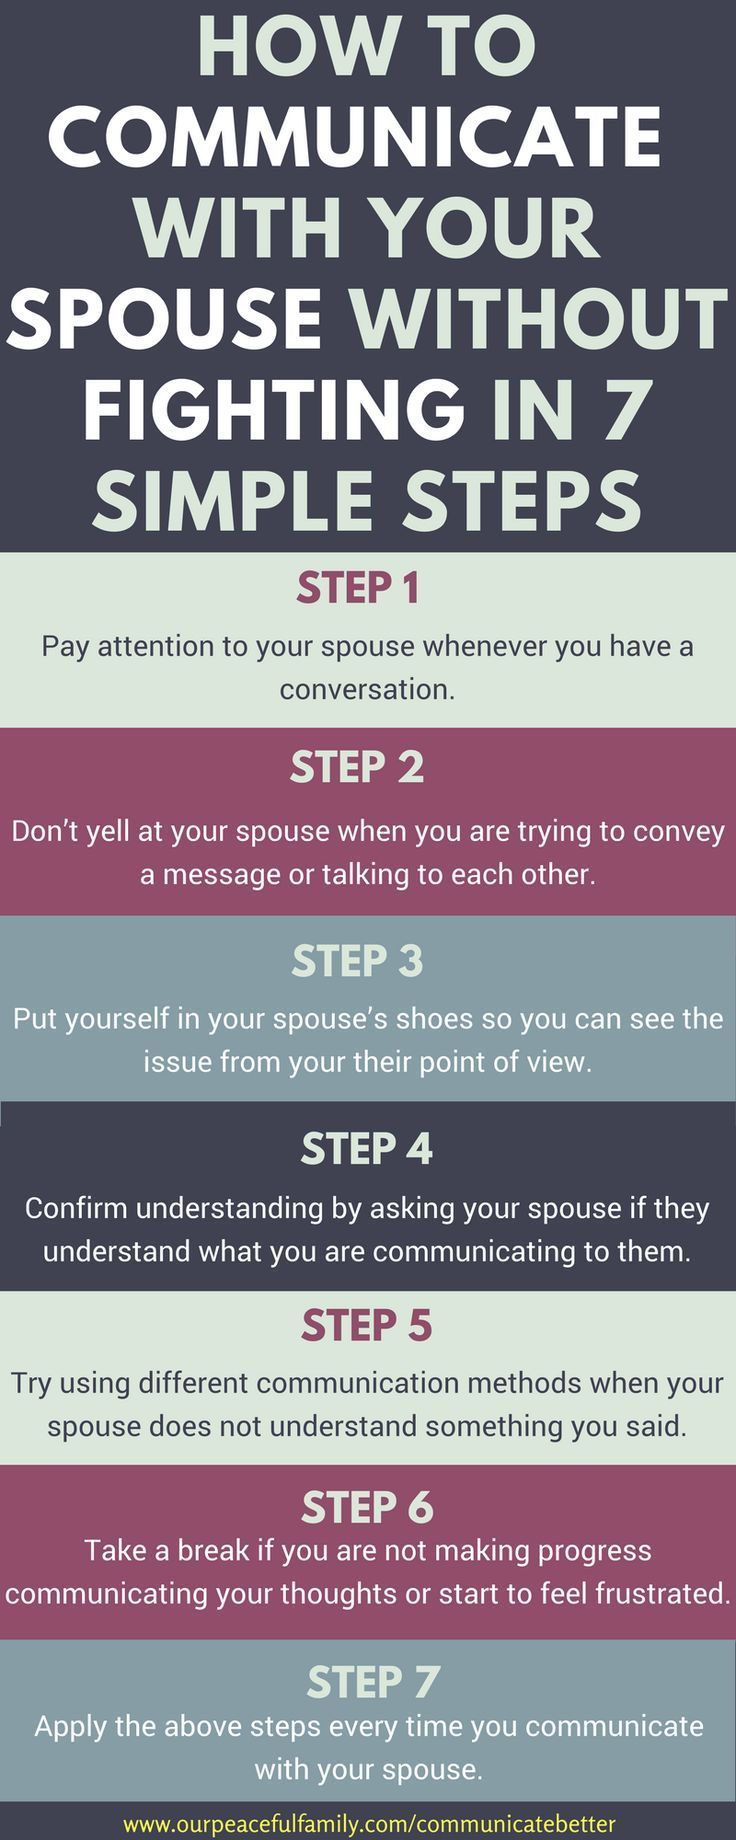 How To Communicate With Your Spouse Without Fighting In 7 Simple